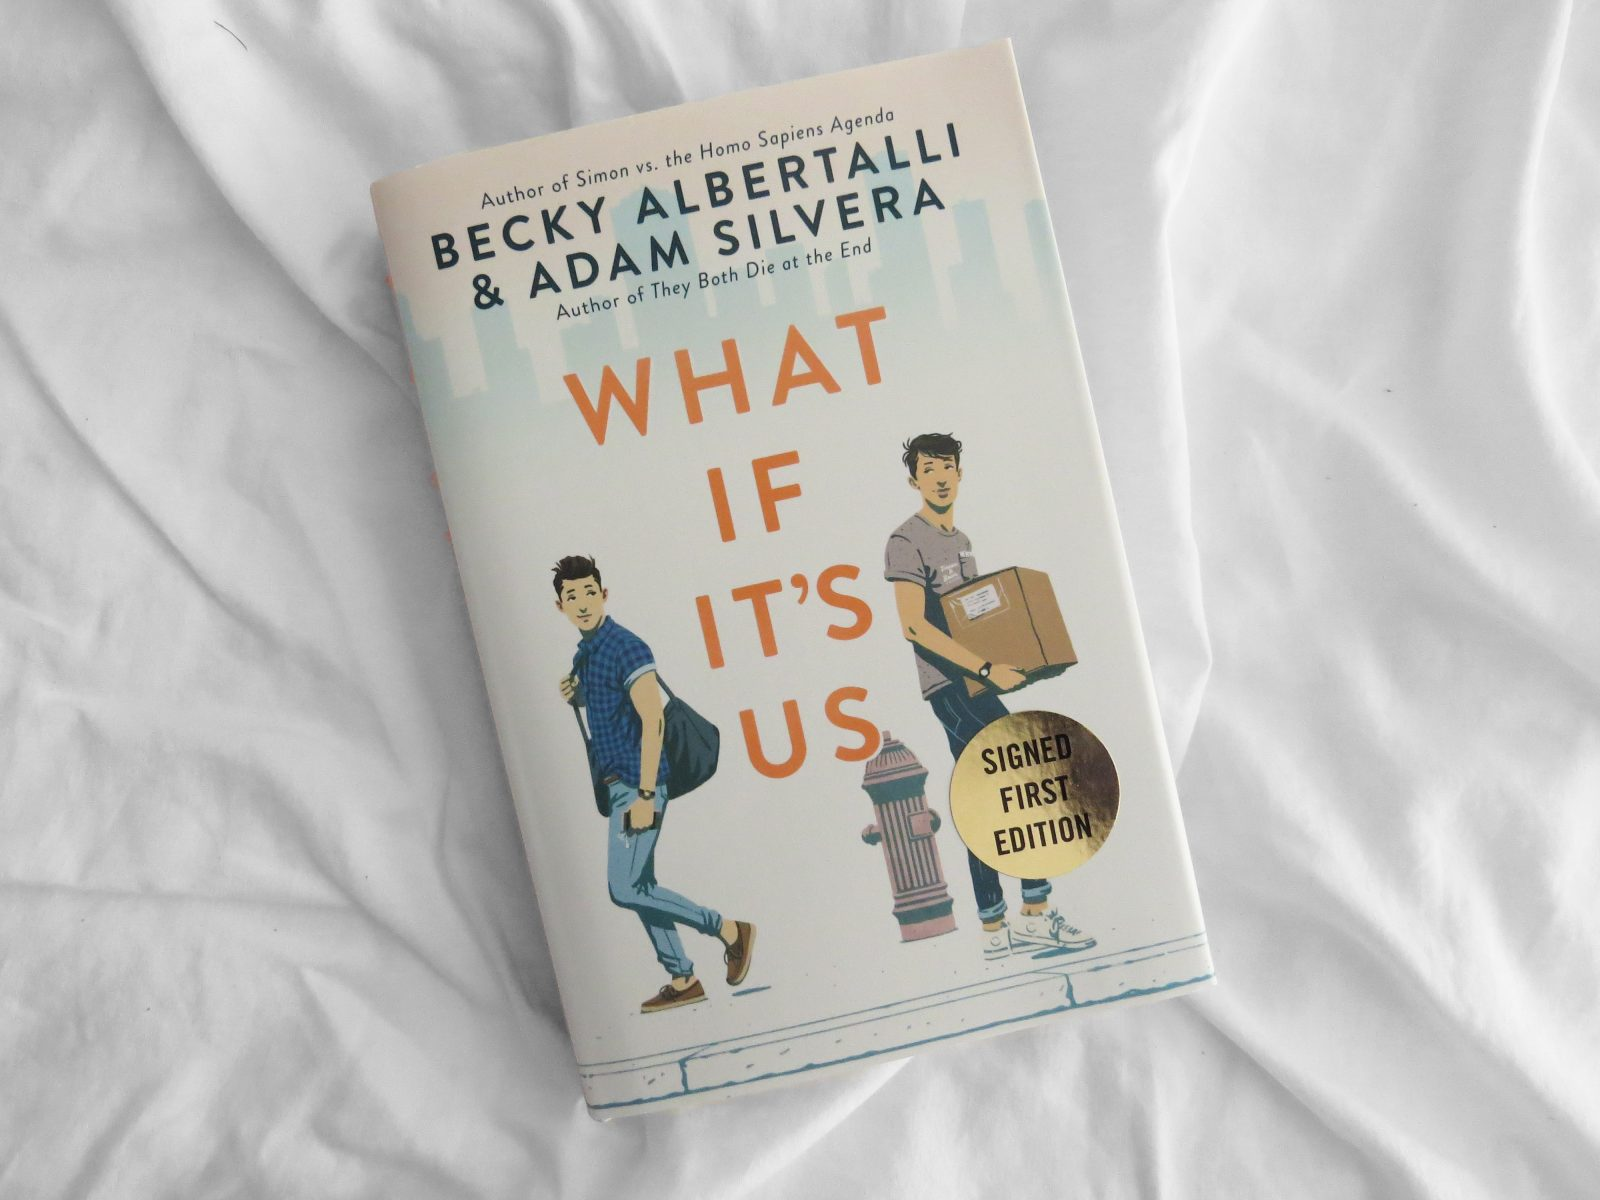 What If It's Us Signed by Becky Albertalli and Adam Silvera - The Contented Reader